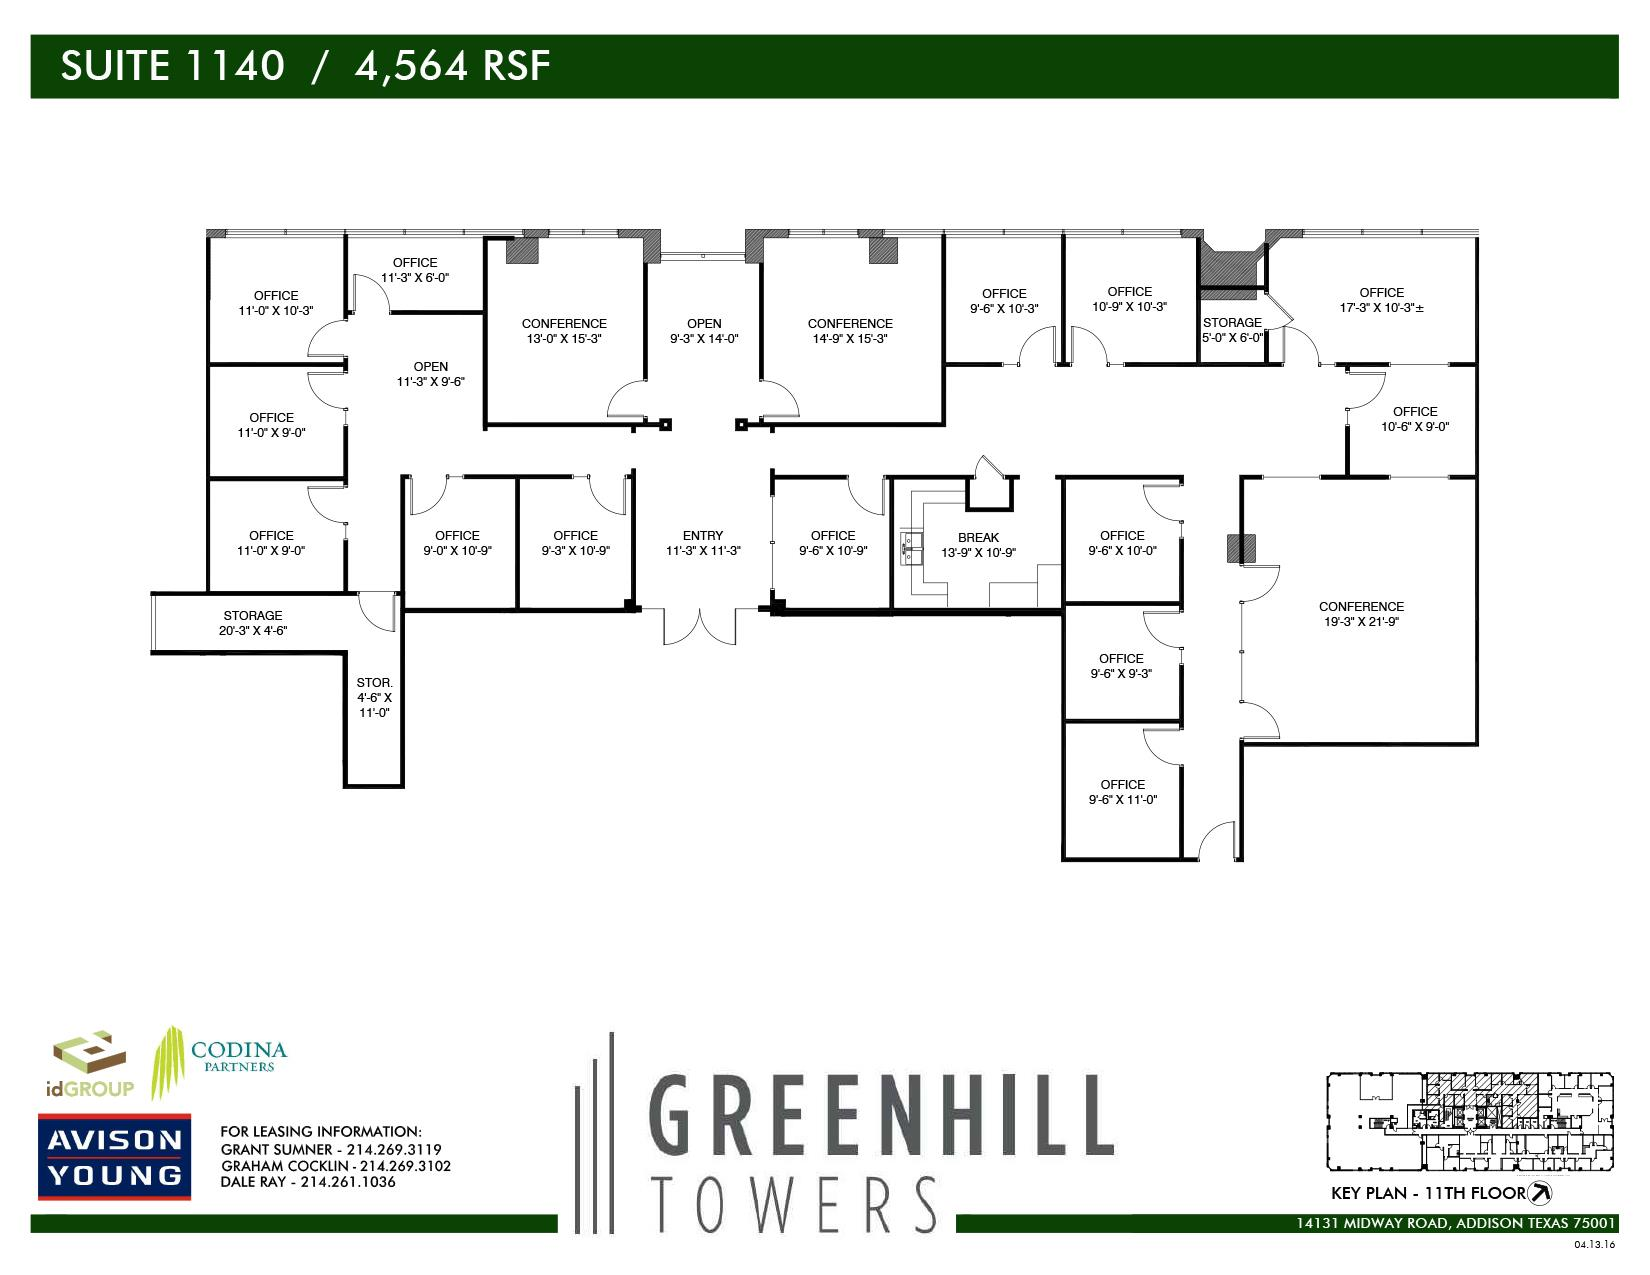 Codina Partners | Greenhill Towers - Suite 1140